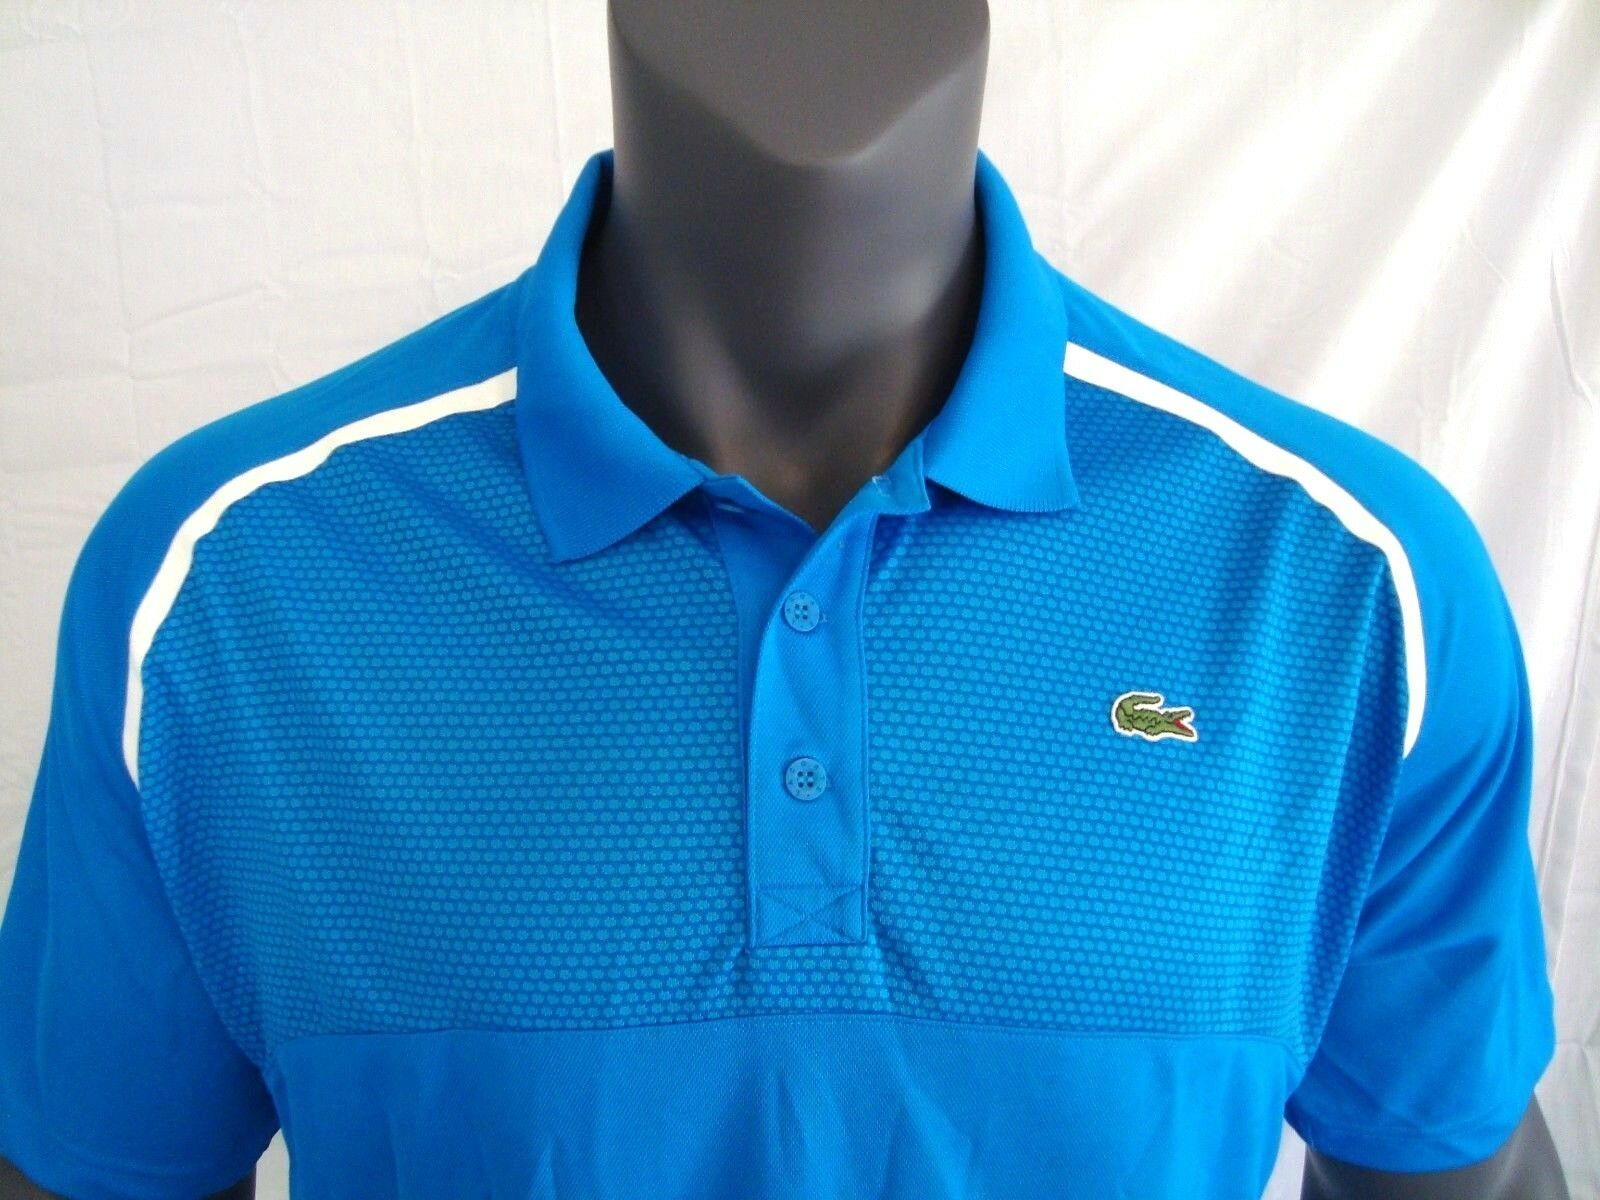 Lacoste SPORT bluee Men's Ultra Dry Mesh Jersey Athletic Polo Shirt NWT Size XS